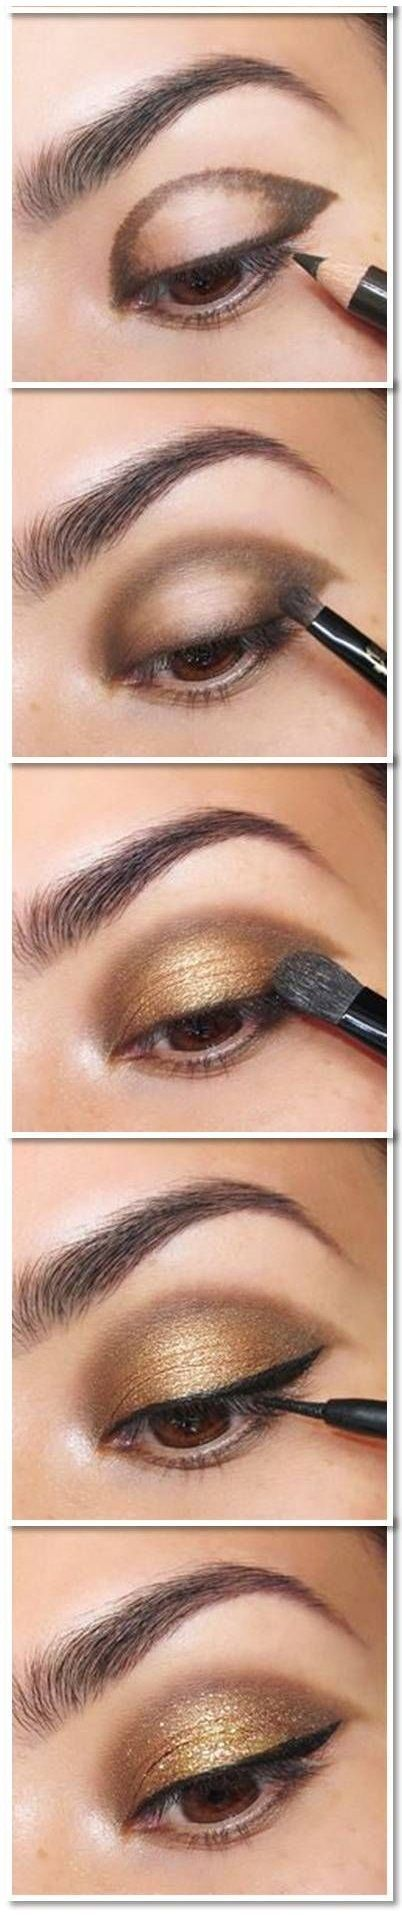 Gold Smoky Eye Makeup Tutorial - #eyes #eyeshadow #gold #smoky #smokey #tutorial…